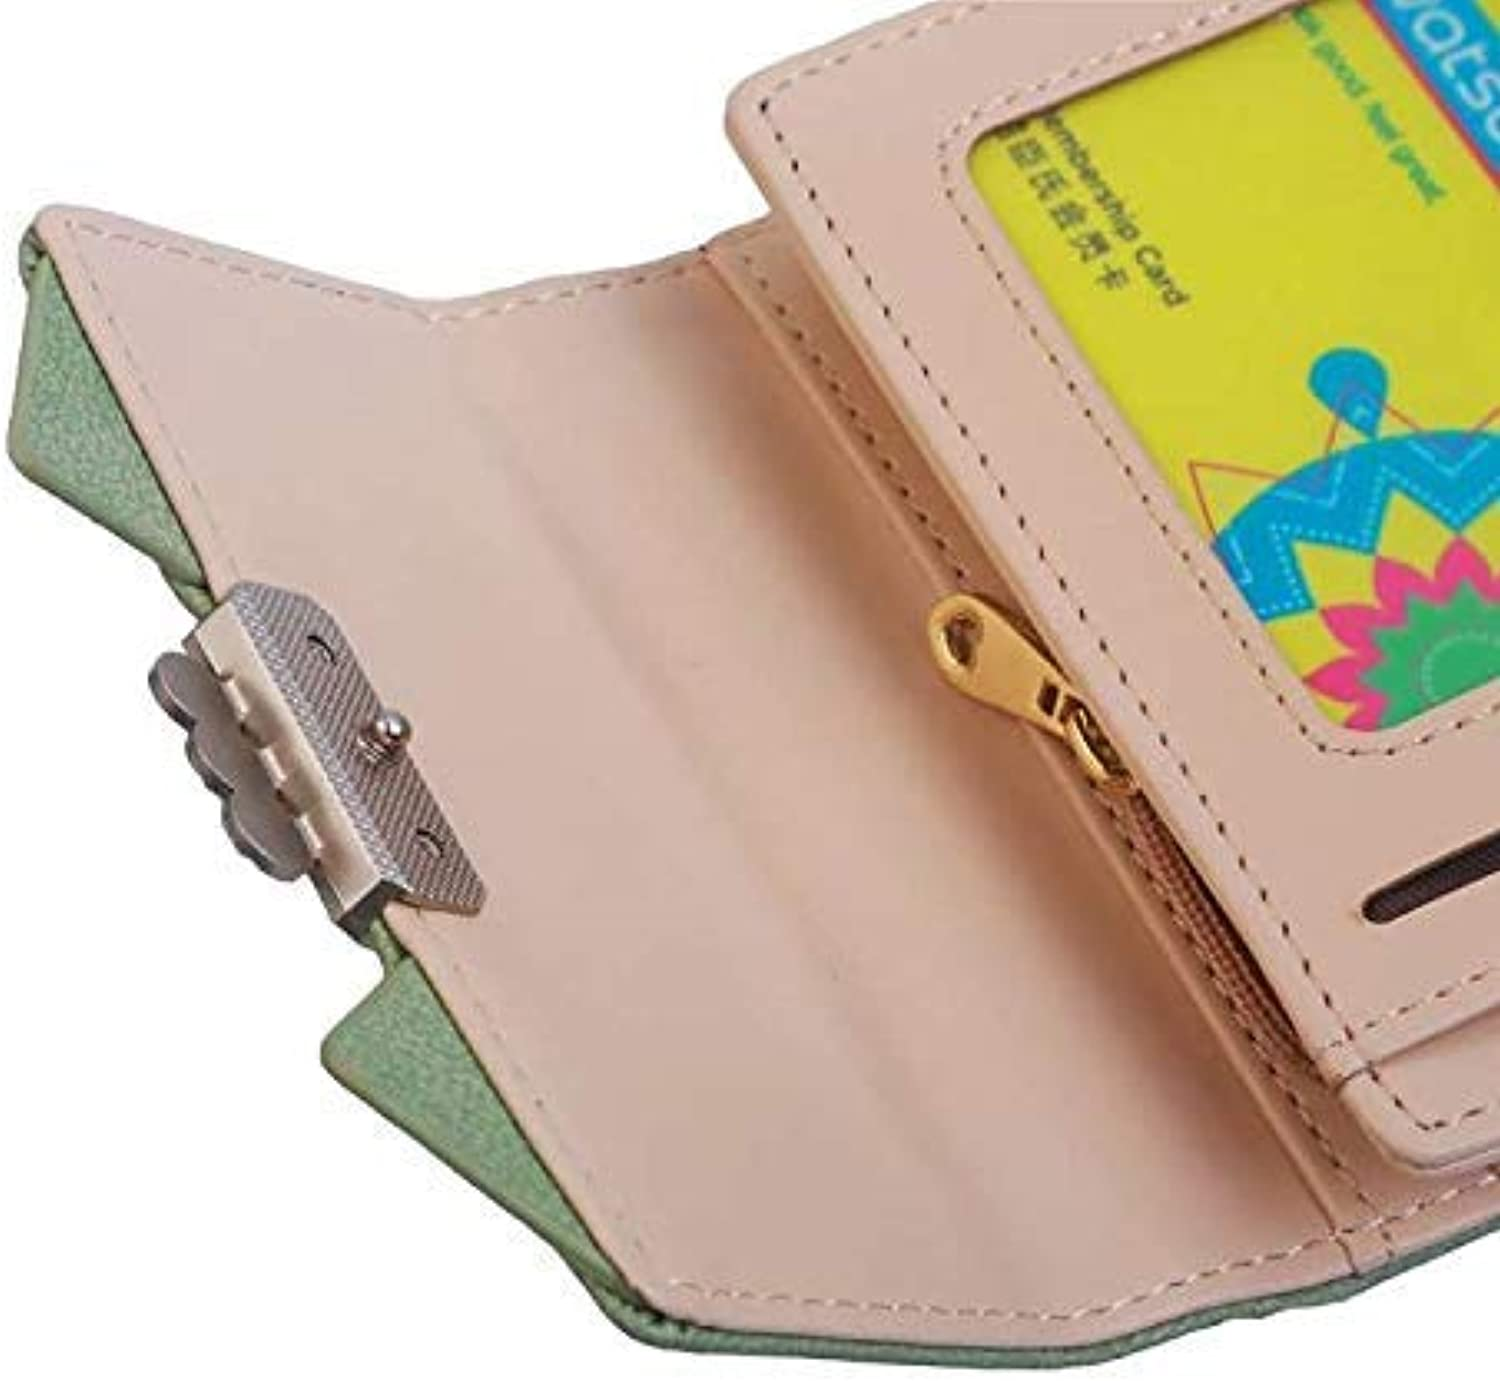 Fashion Cute cat Ears Short Wallet Vintage Ladies MultiFunction Student Wallet Purse (color   Green) Ladies Purses (color   Green)